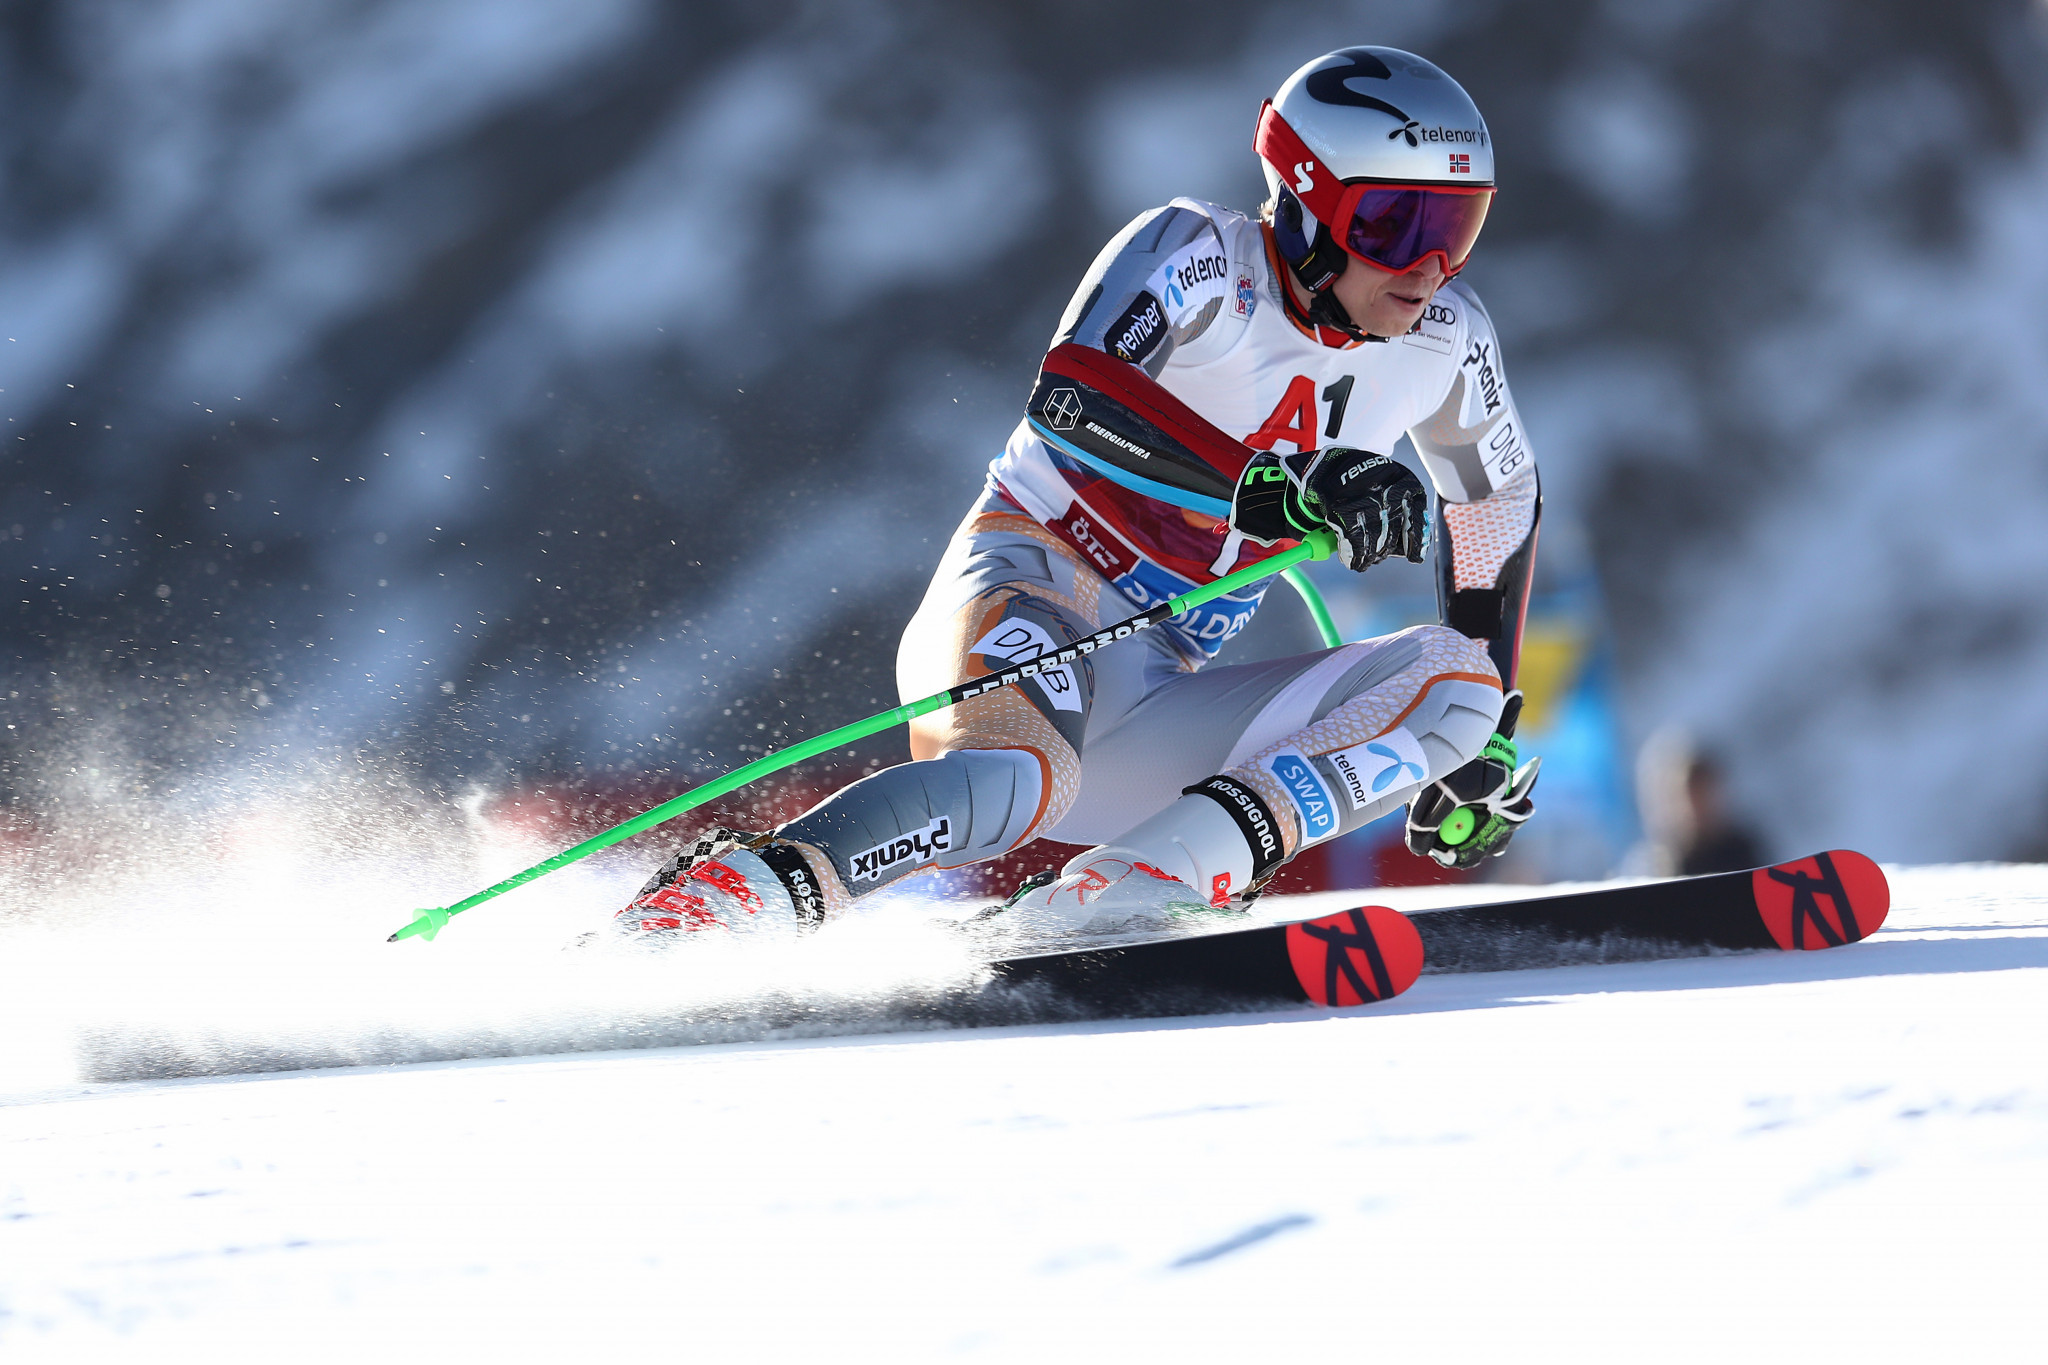 Henrik Kristoffersen of Norway will be among the main contenders in the men's event ©Getty Images